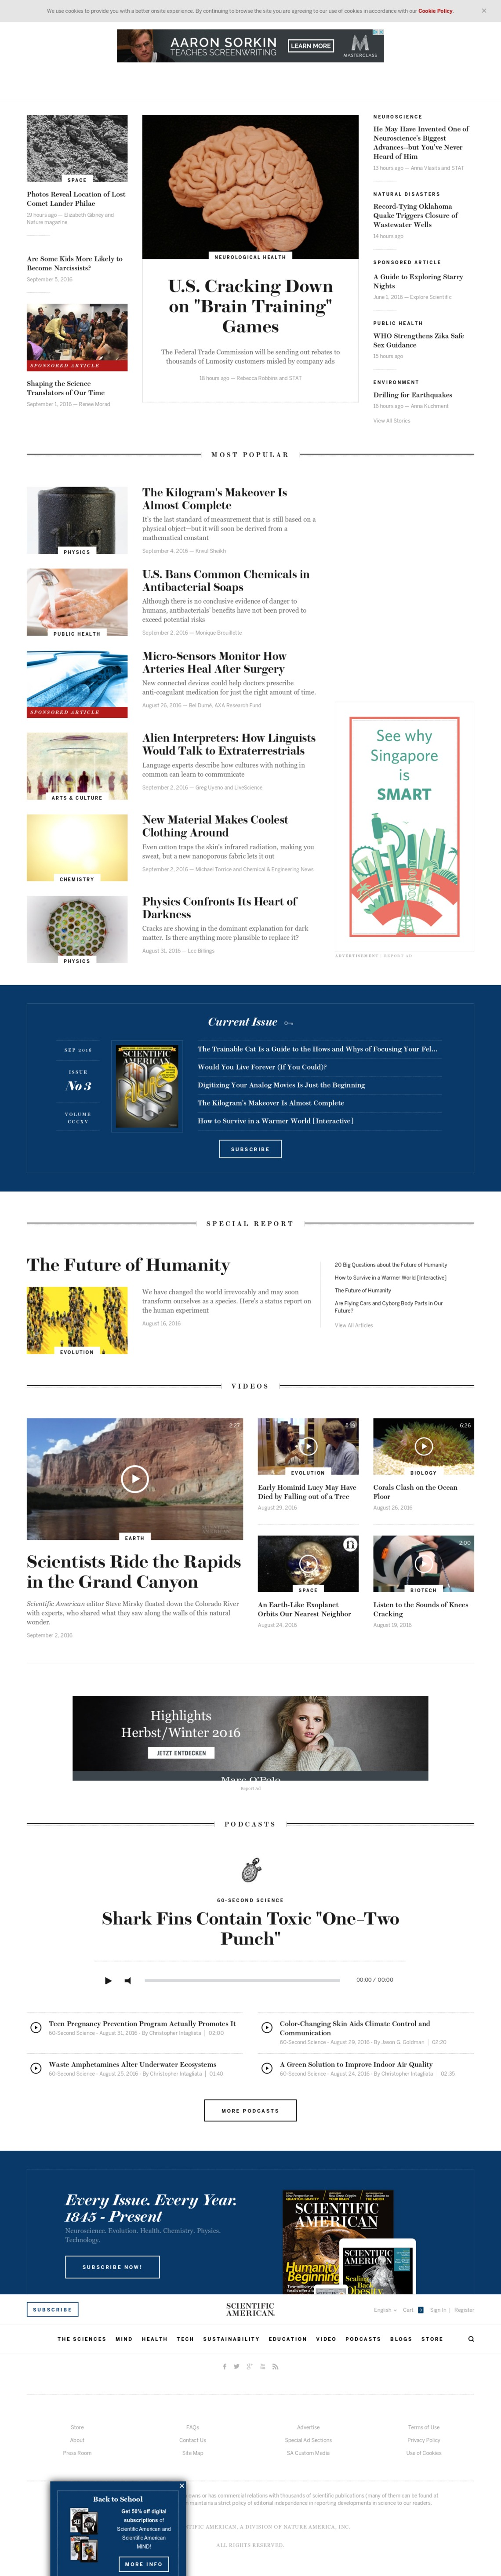 Scientific American | Science News, Articles, and Information